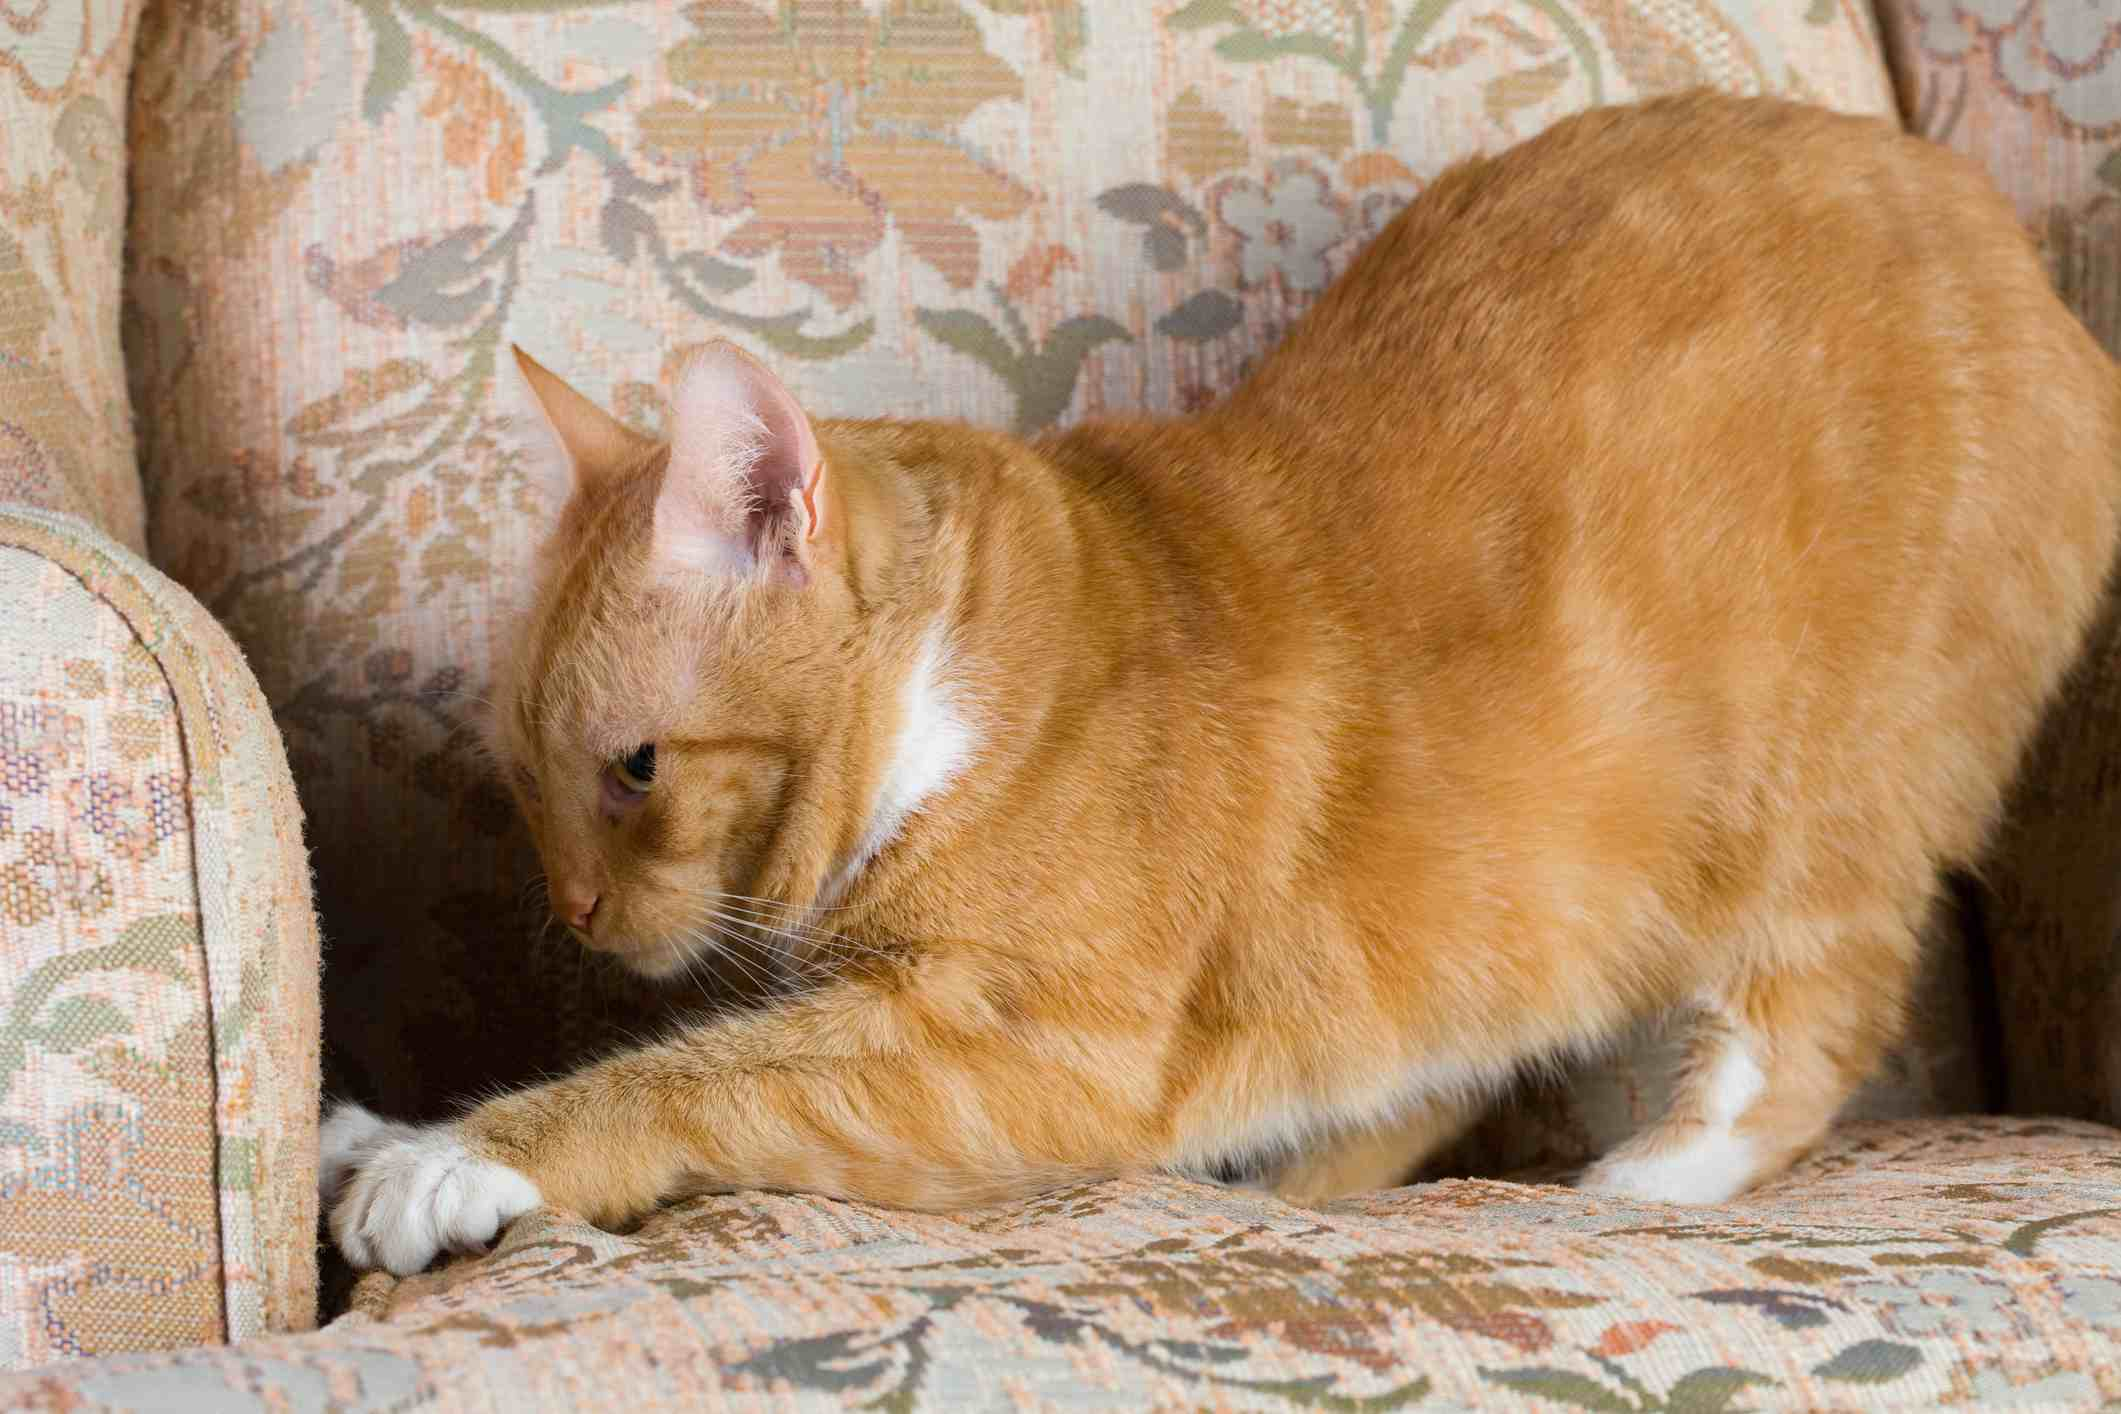 Tabby cat scratching an upholstered chair.